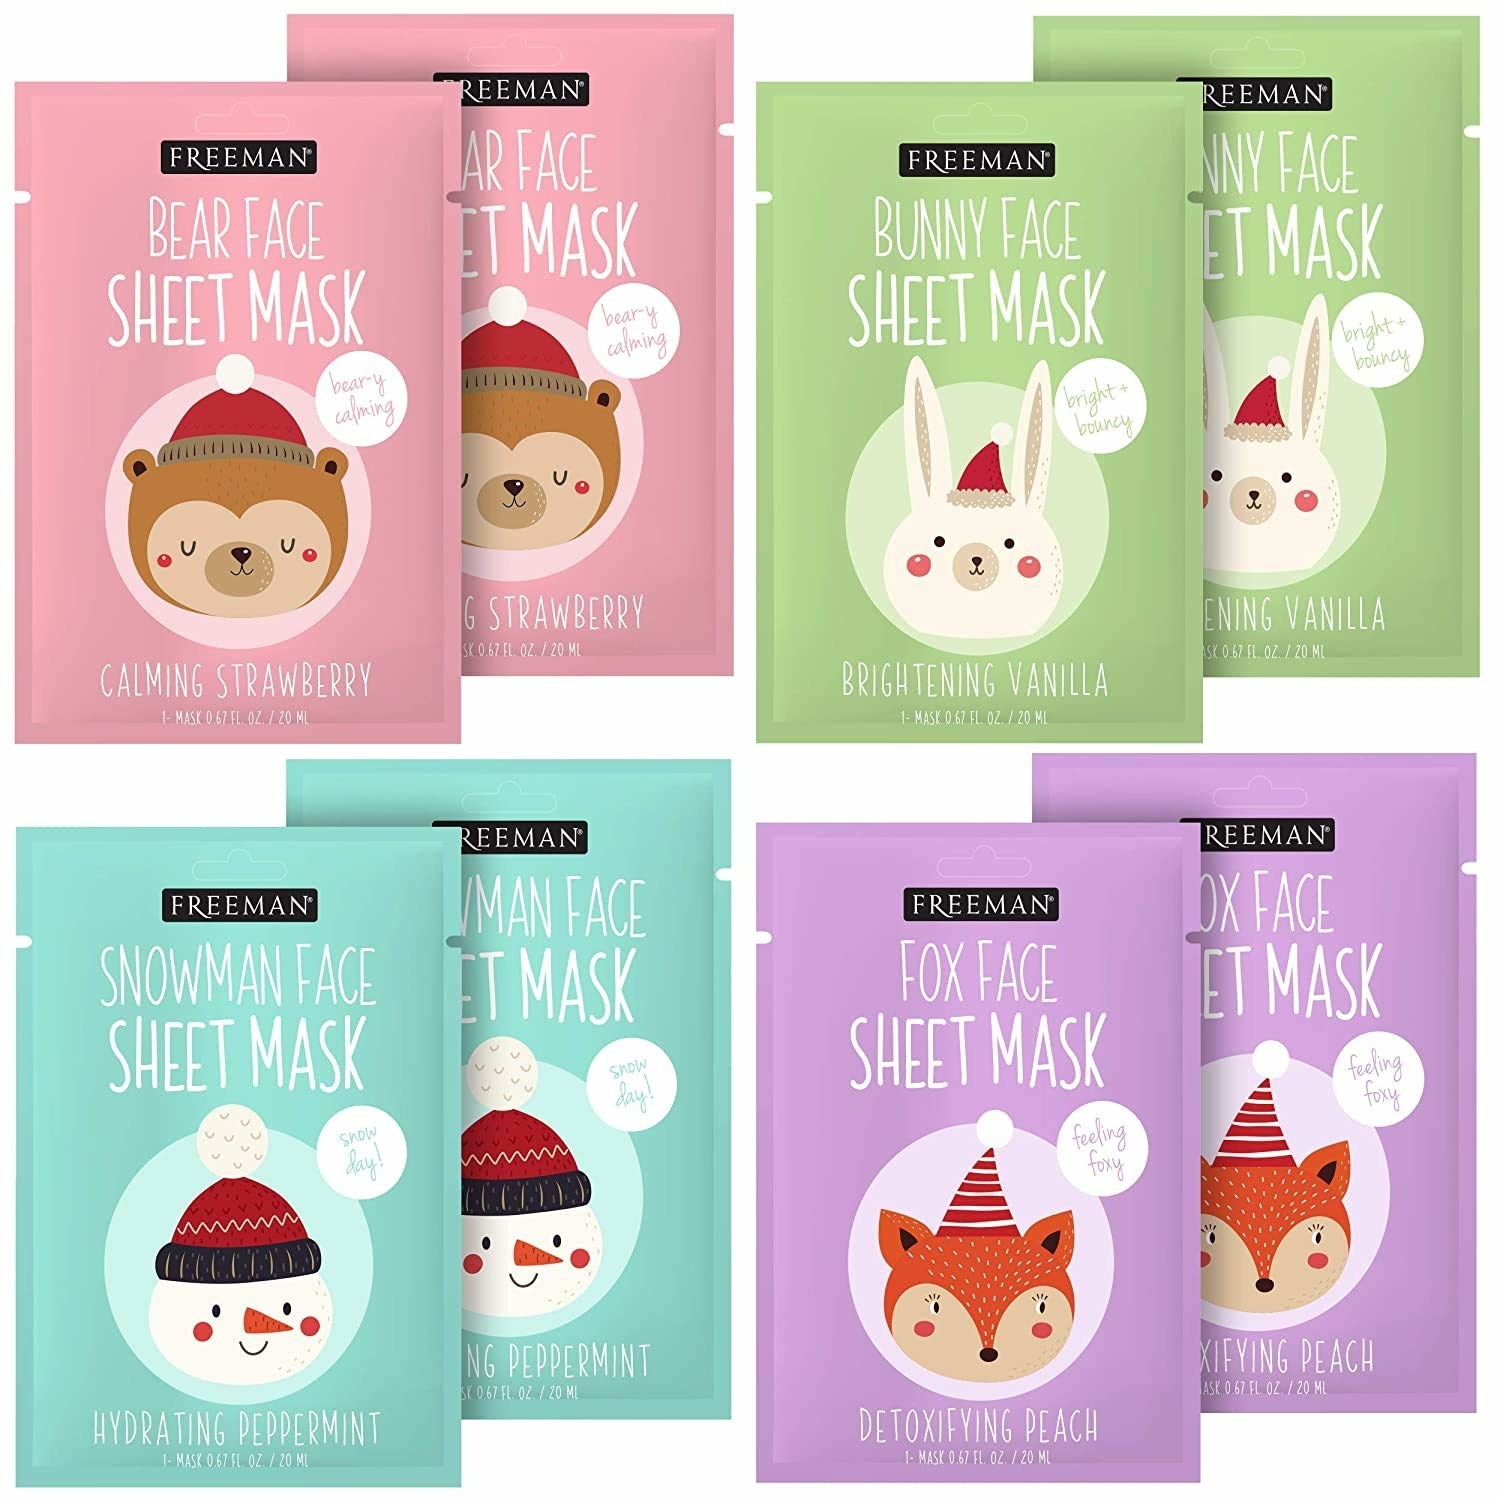 sheet masks with bears, snowmen, bunnies, and foxes